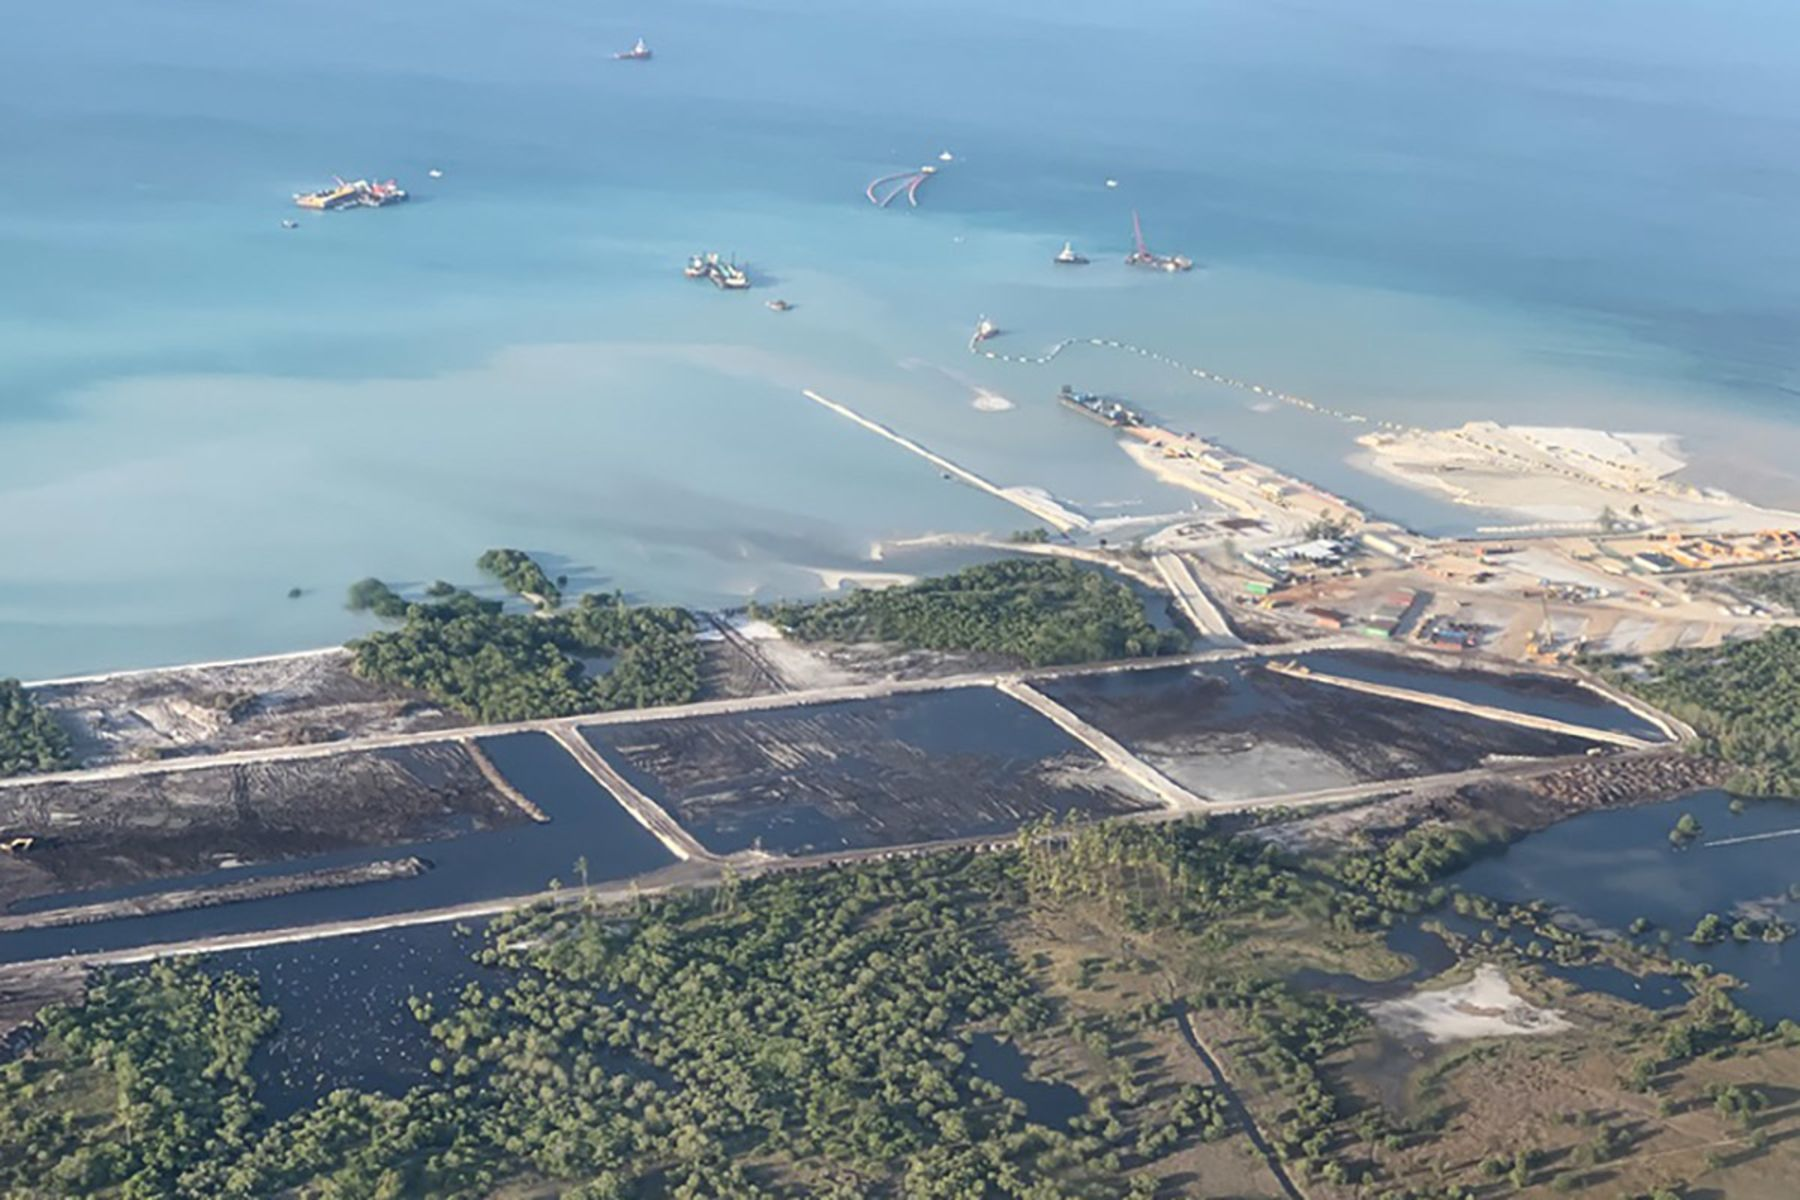 Construction work at the early beach landing facility where companies including Total SA plan on building giant liquefied natural gas storage tanks for export, June 18, 2020.